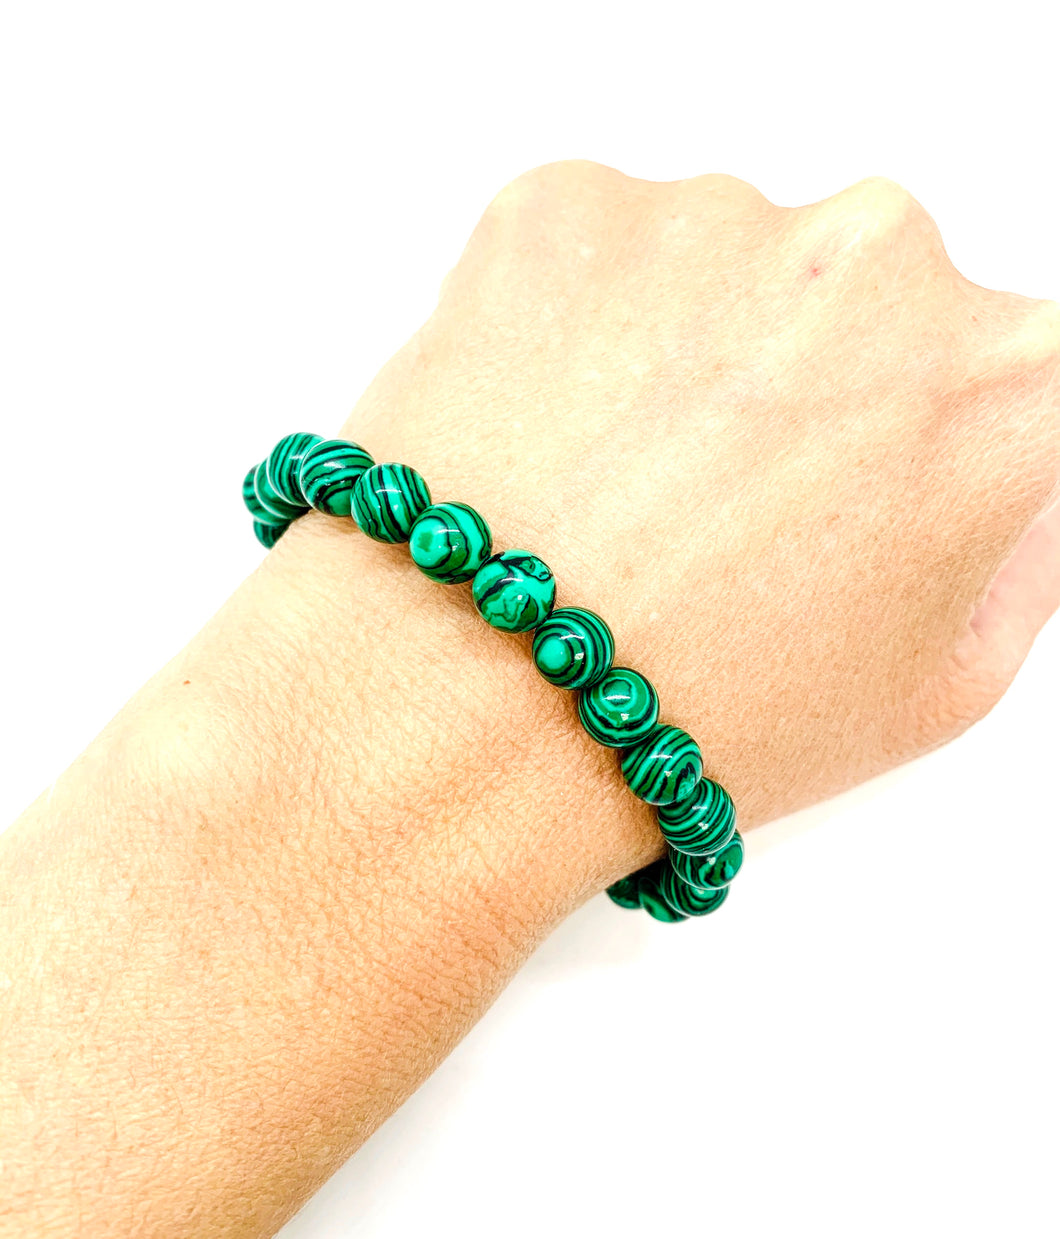 Malachite is a swirling emerald green stone that acts as a personal cheerleader encouraging self-worth, commitment, willpower, & forgiveness.  It is also most associated with the heart chakra. Bracelet materials include 8mm malachite stones on an elastic cord. Custom sizing is available by Contacting Us.